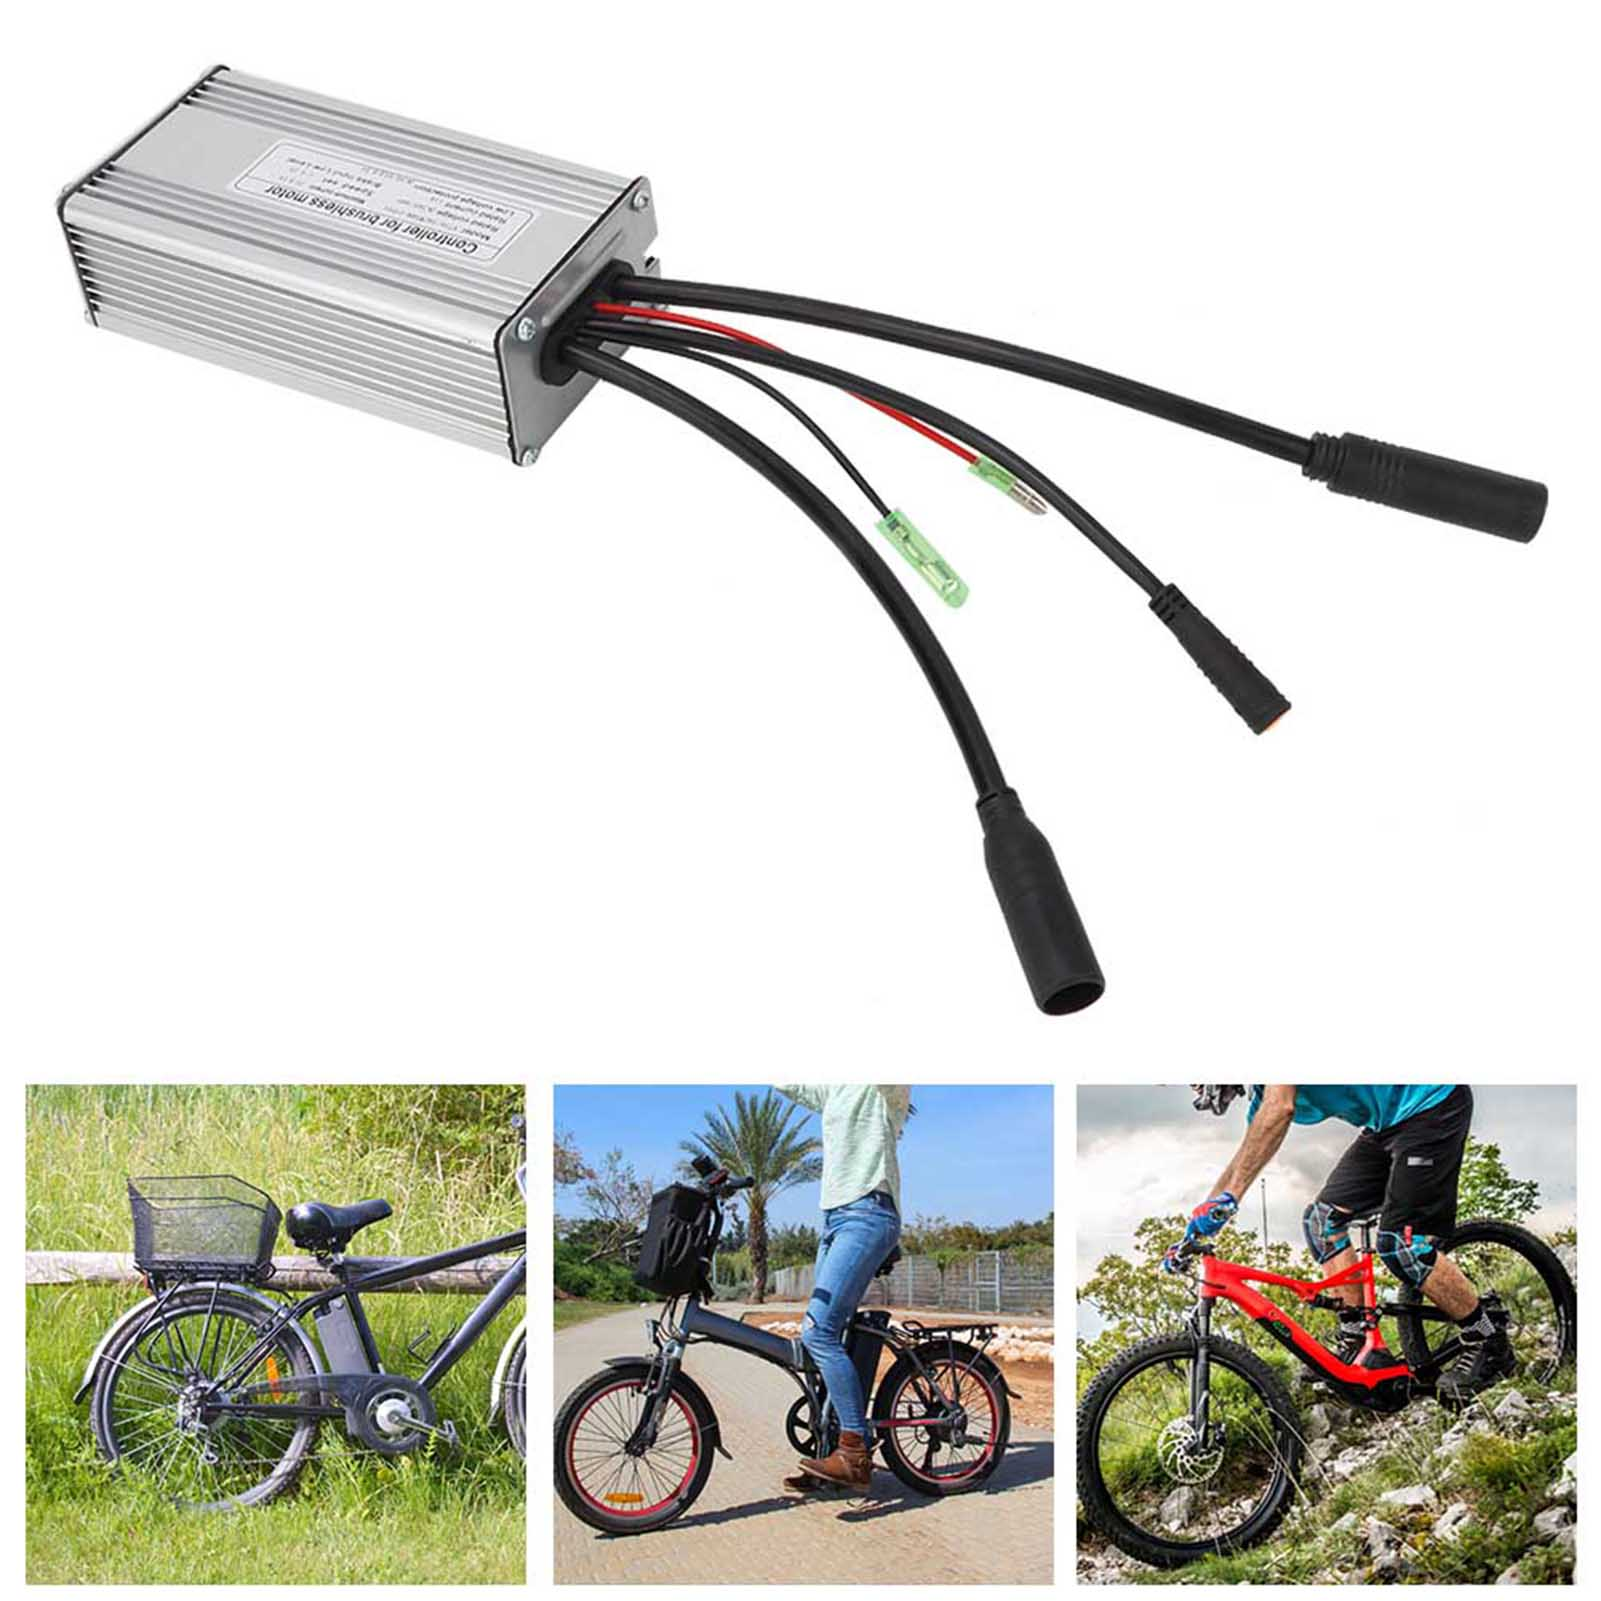 24V-36V-48V-Electric-Bicycle-Bike-Scooter-Brushless-Motor-Speed-Controller-Kit thumbnail 23